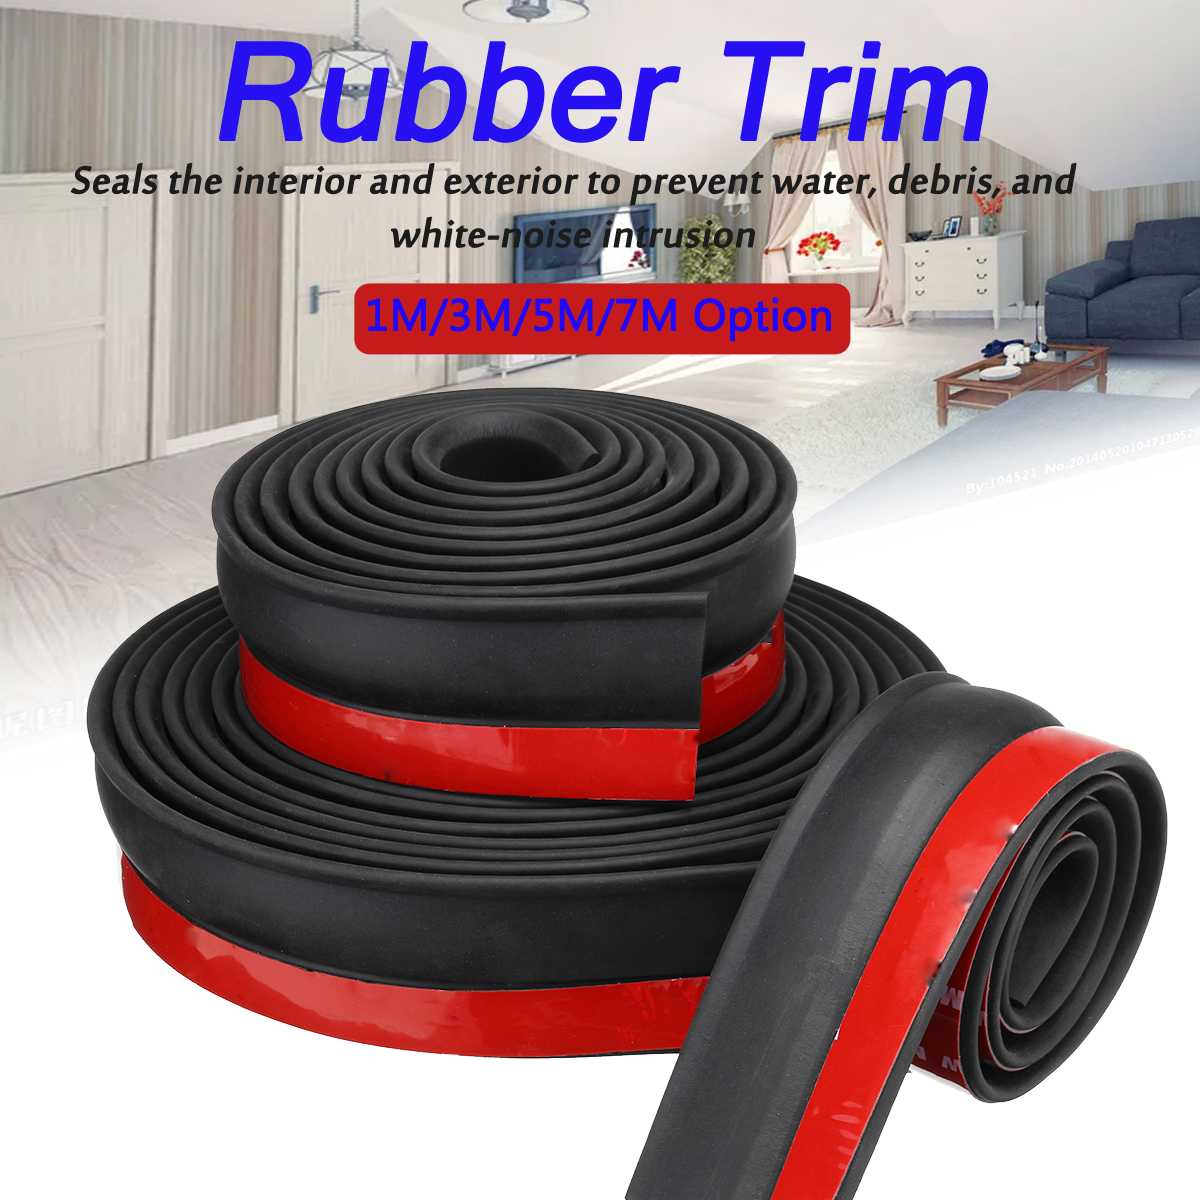 7m/3m/1m Universal Garage Door Bottom Weather Stripping Rubber Seal Strip Replacement Door Seal Strip Home Accessory 2019 New